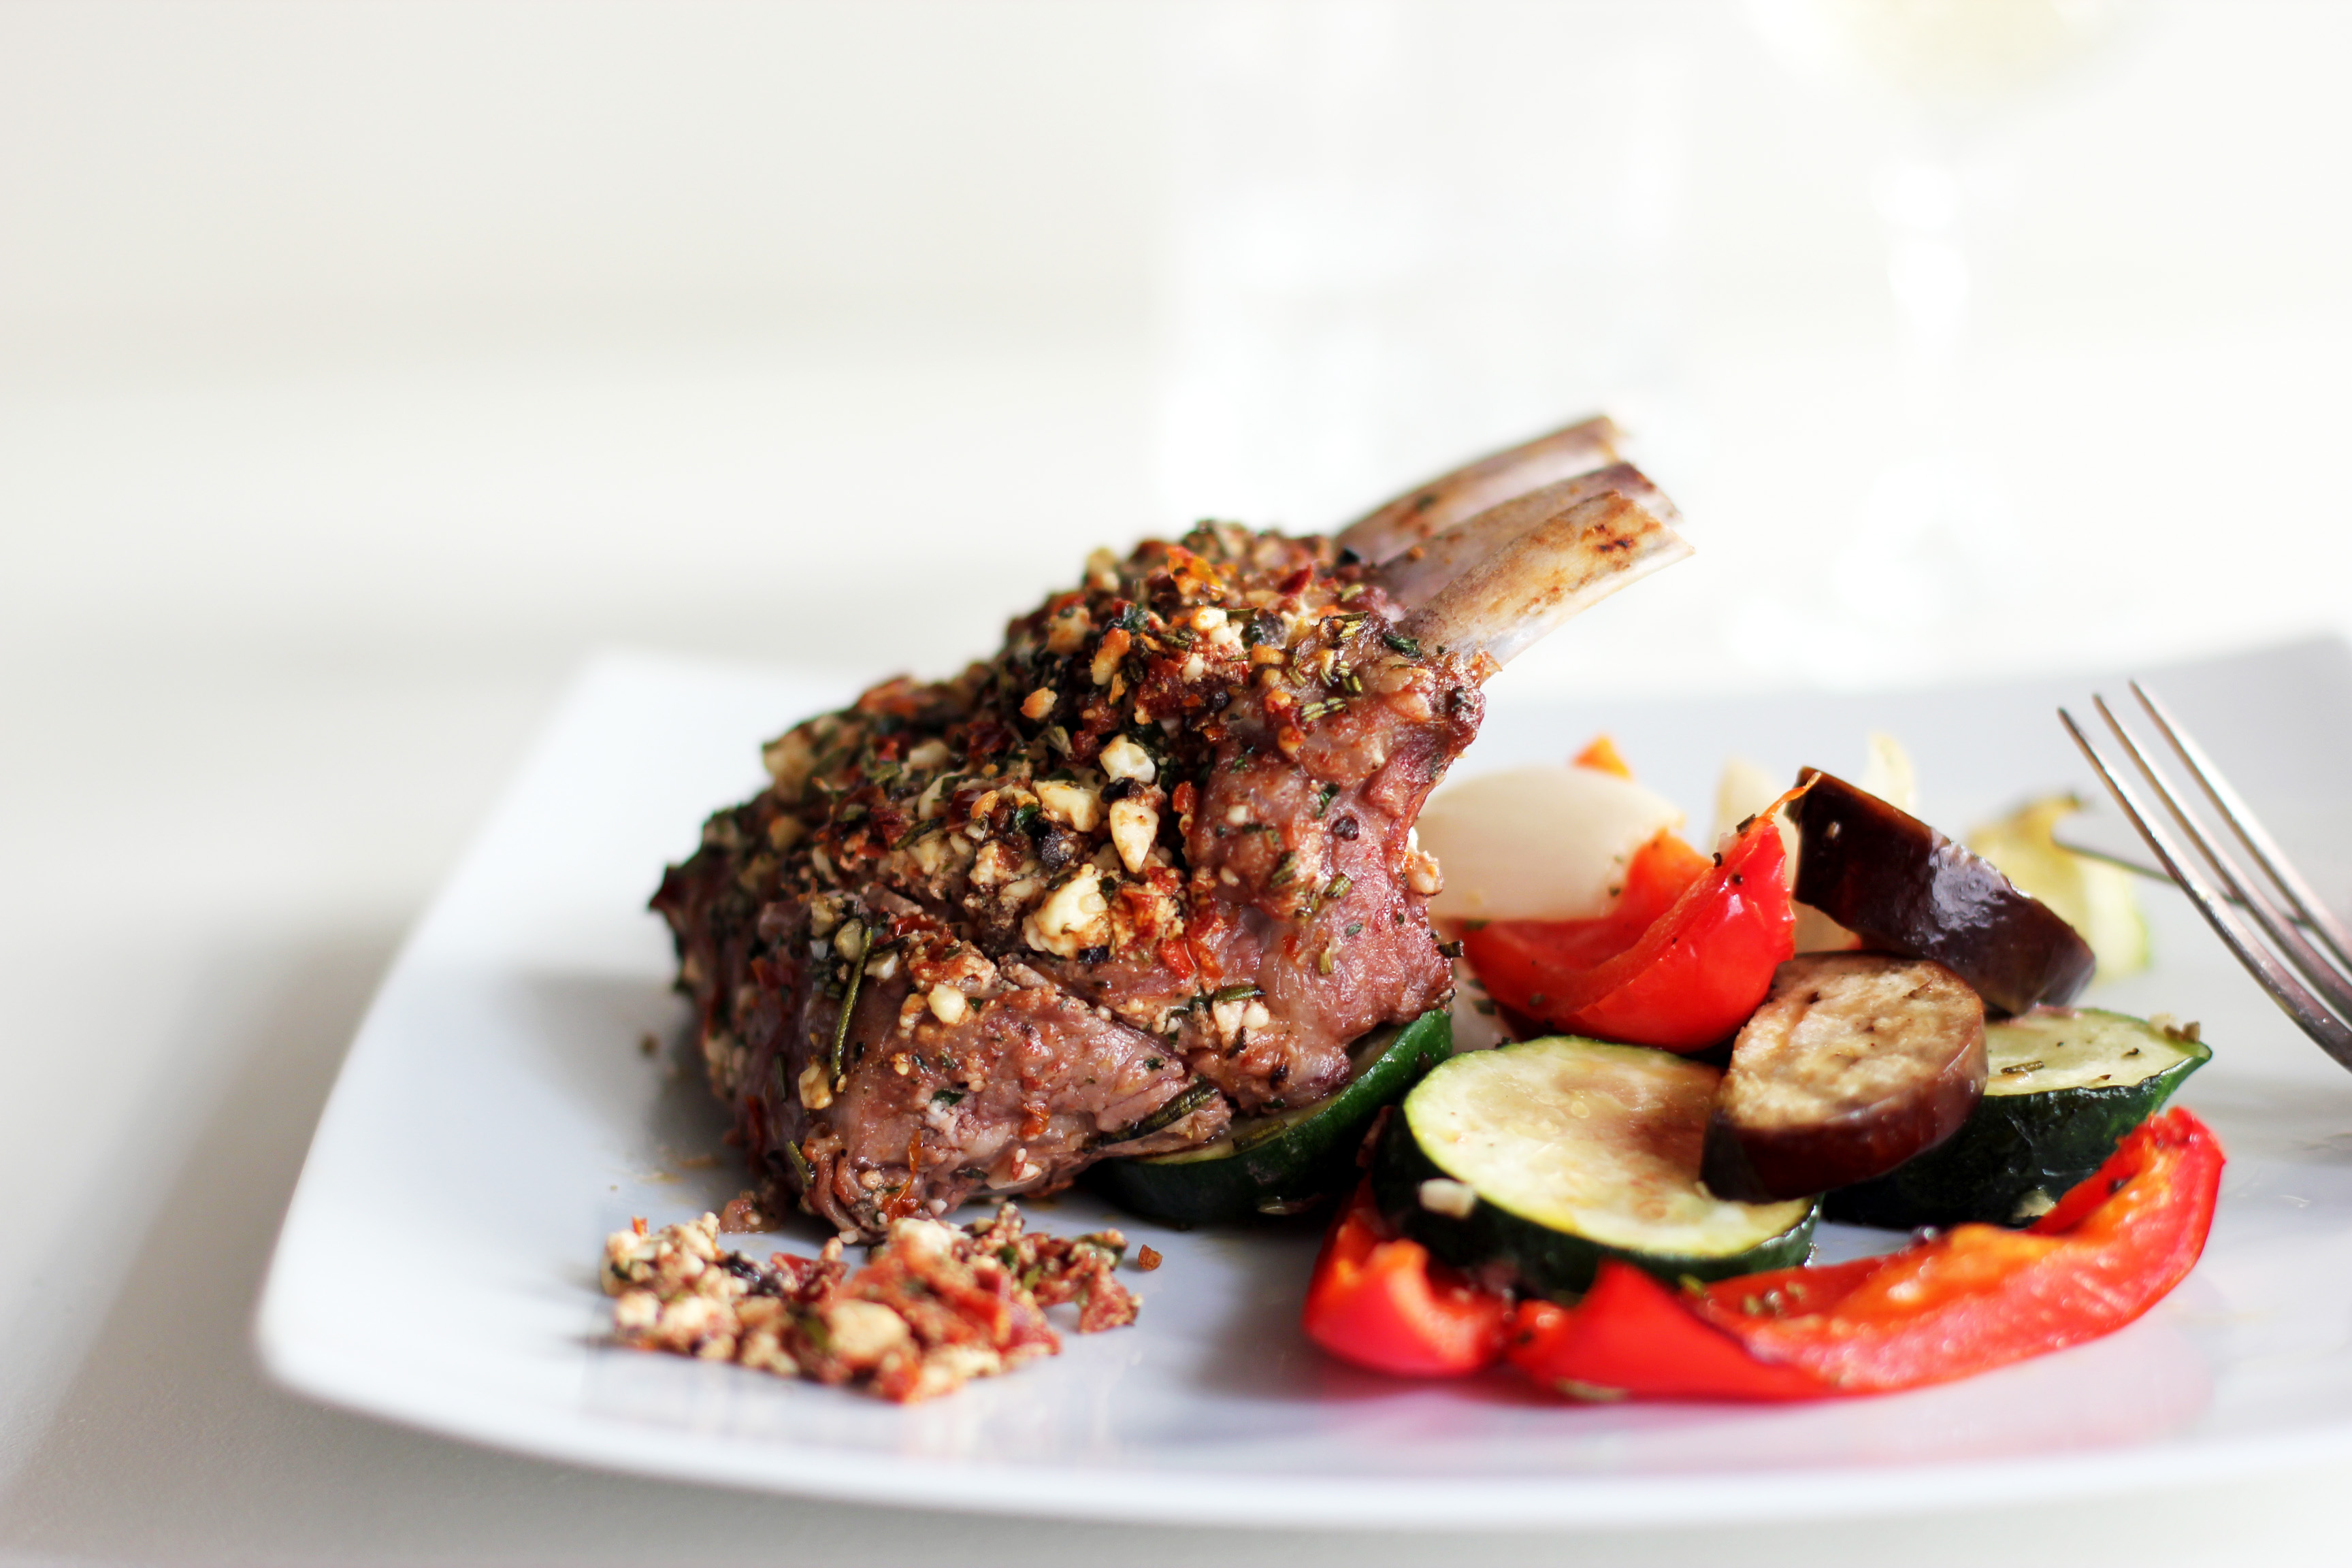 Jamie Oliver's Stuffed Rack of Lamb | Cooking in Sens